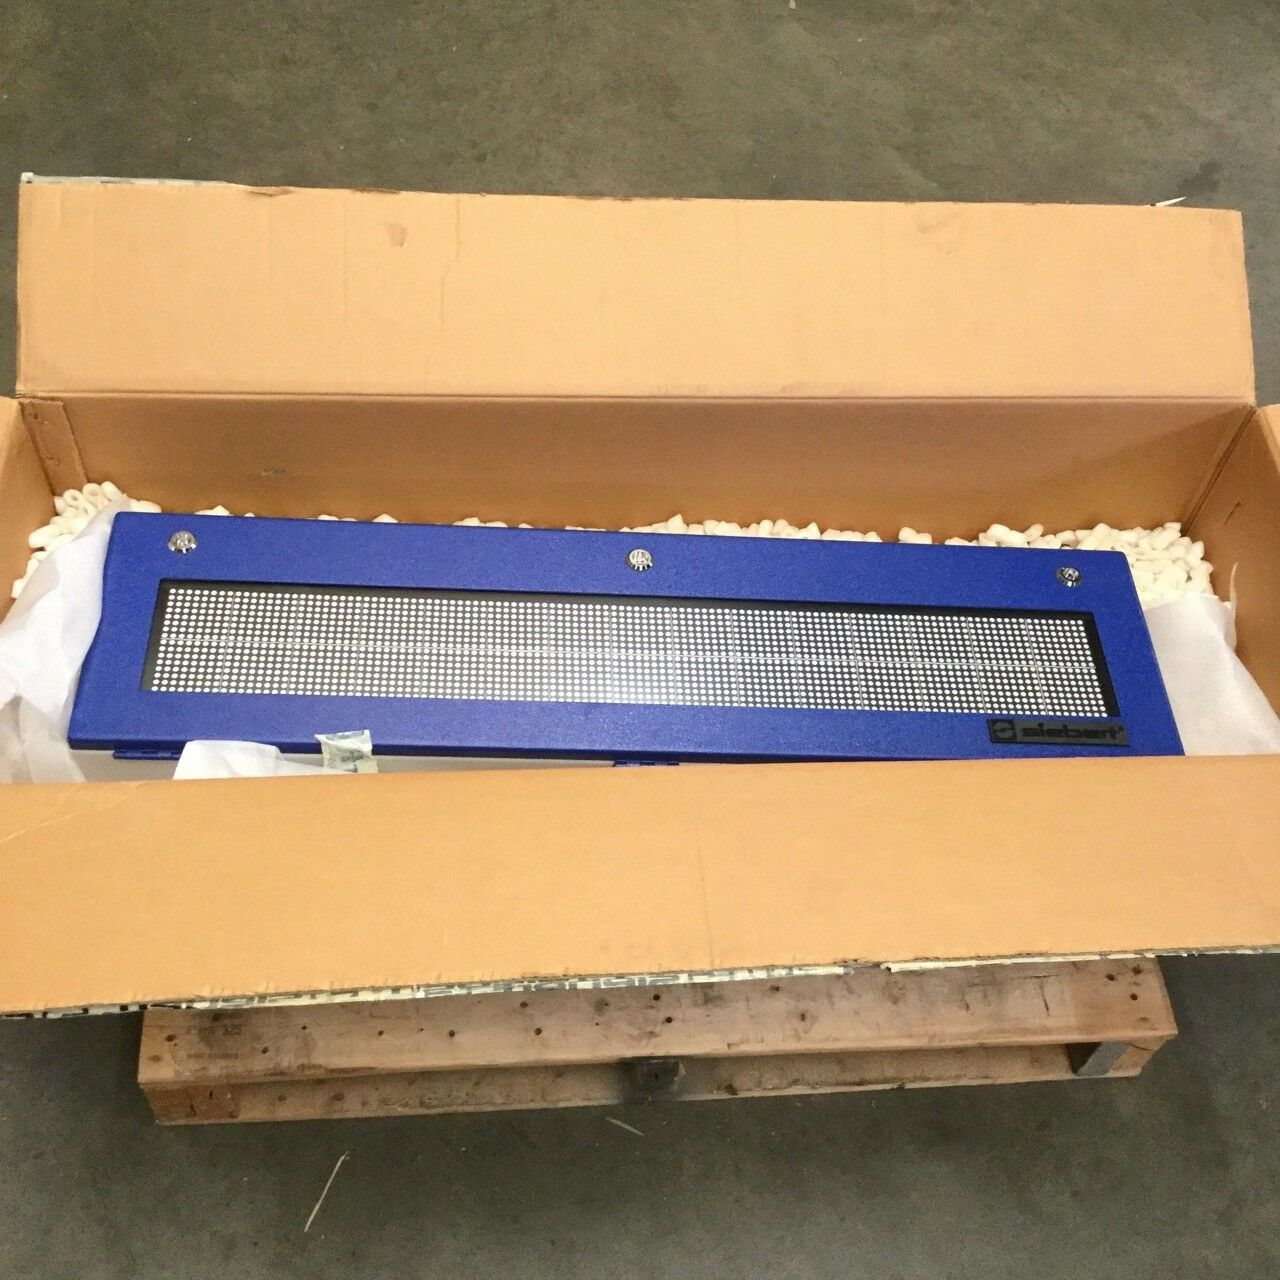 Siebert SCD502-482-1 Digital display system LED 230V AC 50Hz NEW NEW NEW NFP 274909